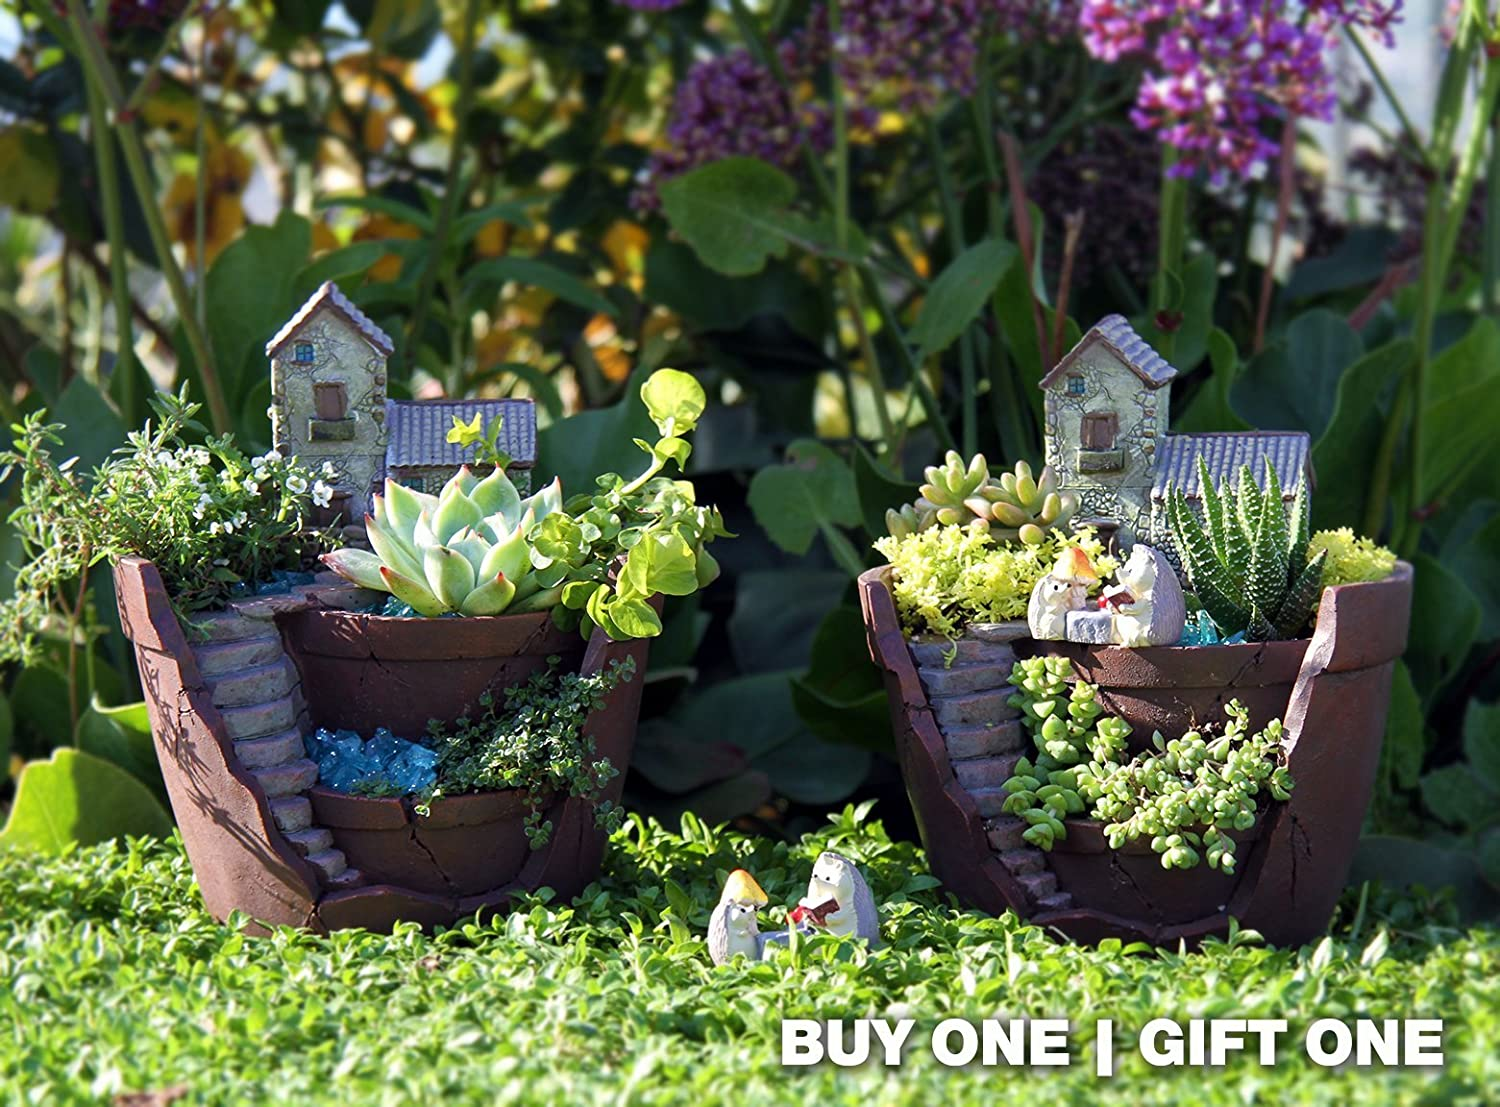 Top 30 stunning low budget diy garden pots and containers 187 home - Amazon Com Fairy Garden Planter Indoor And Outdoor Pot Makes The Perfect Idea For Fairy Lovers Plants Not Included Garden Outdoor